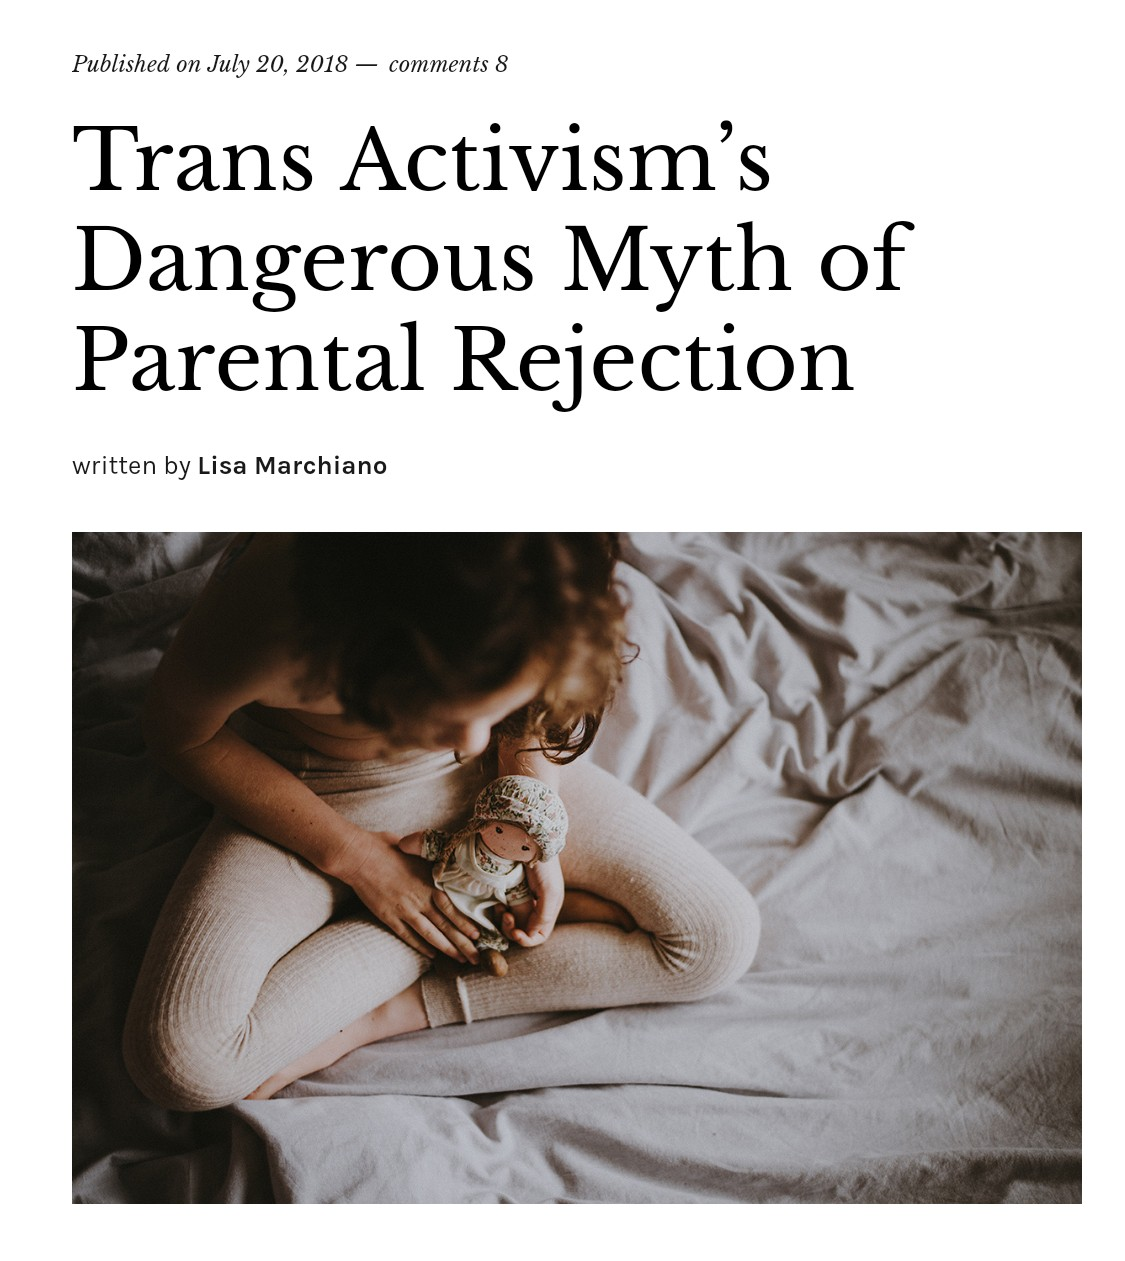 Lisa Marchiano: trans activism's dangerous myth of parental